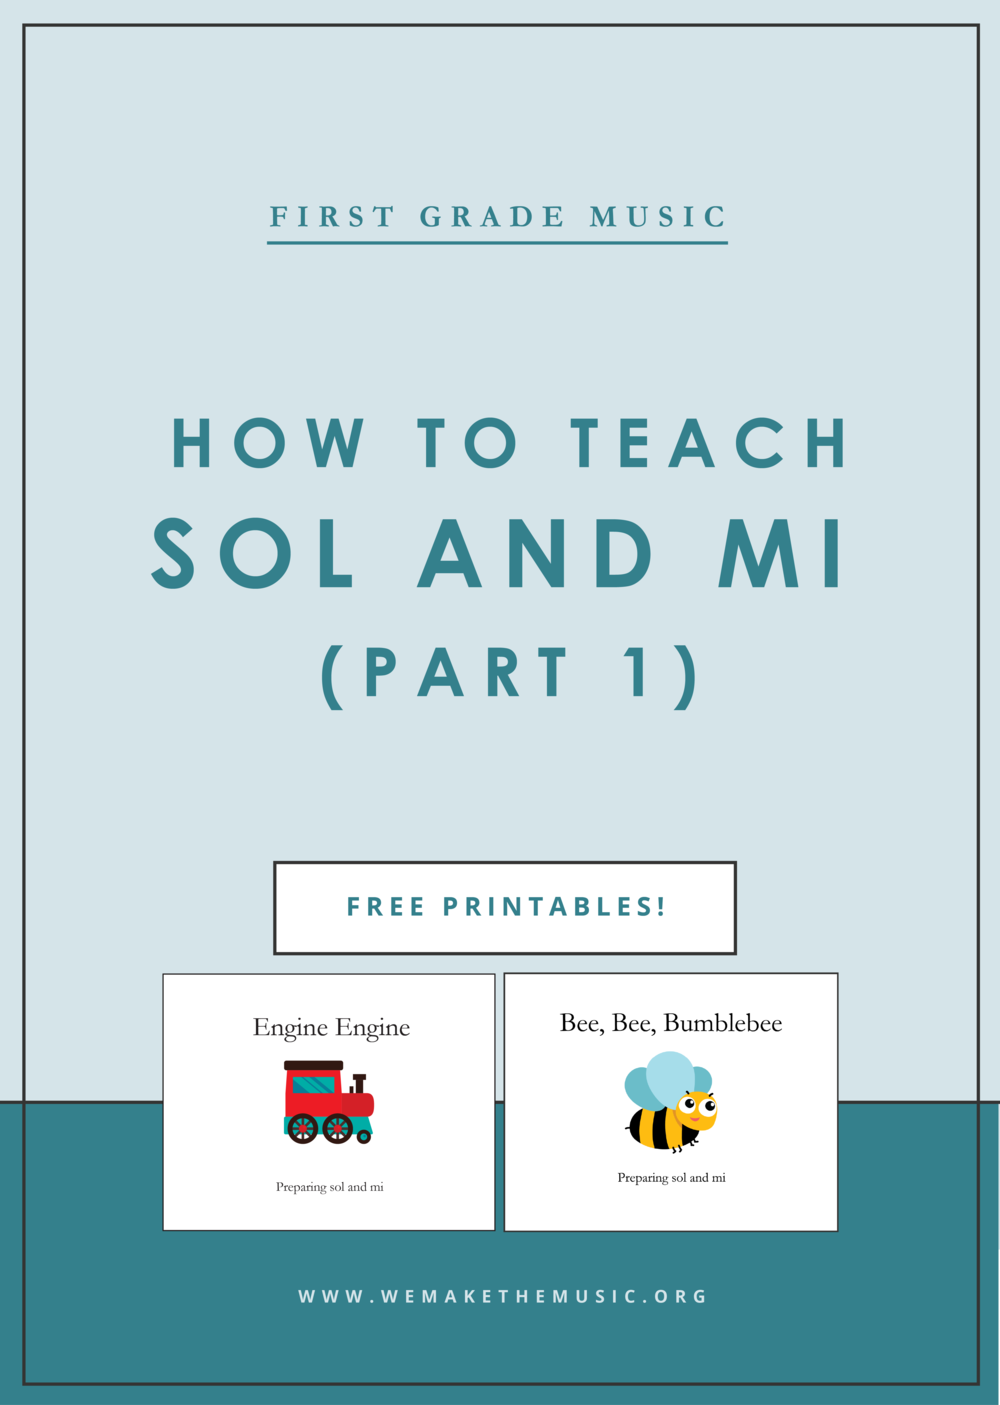 First Grade Music: How to prepare Sol and Mi